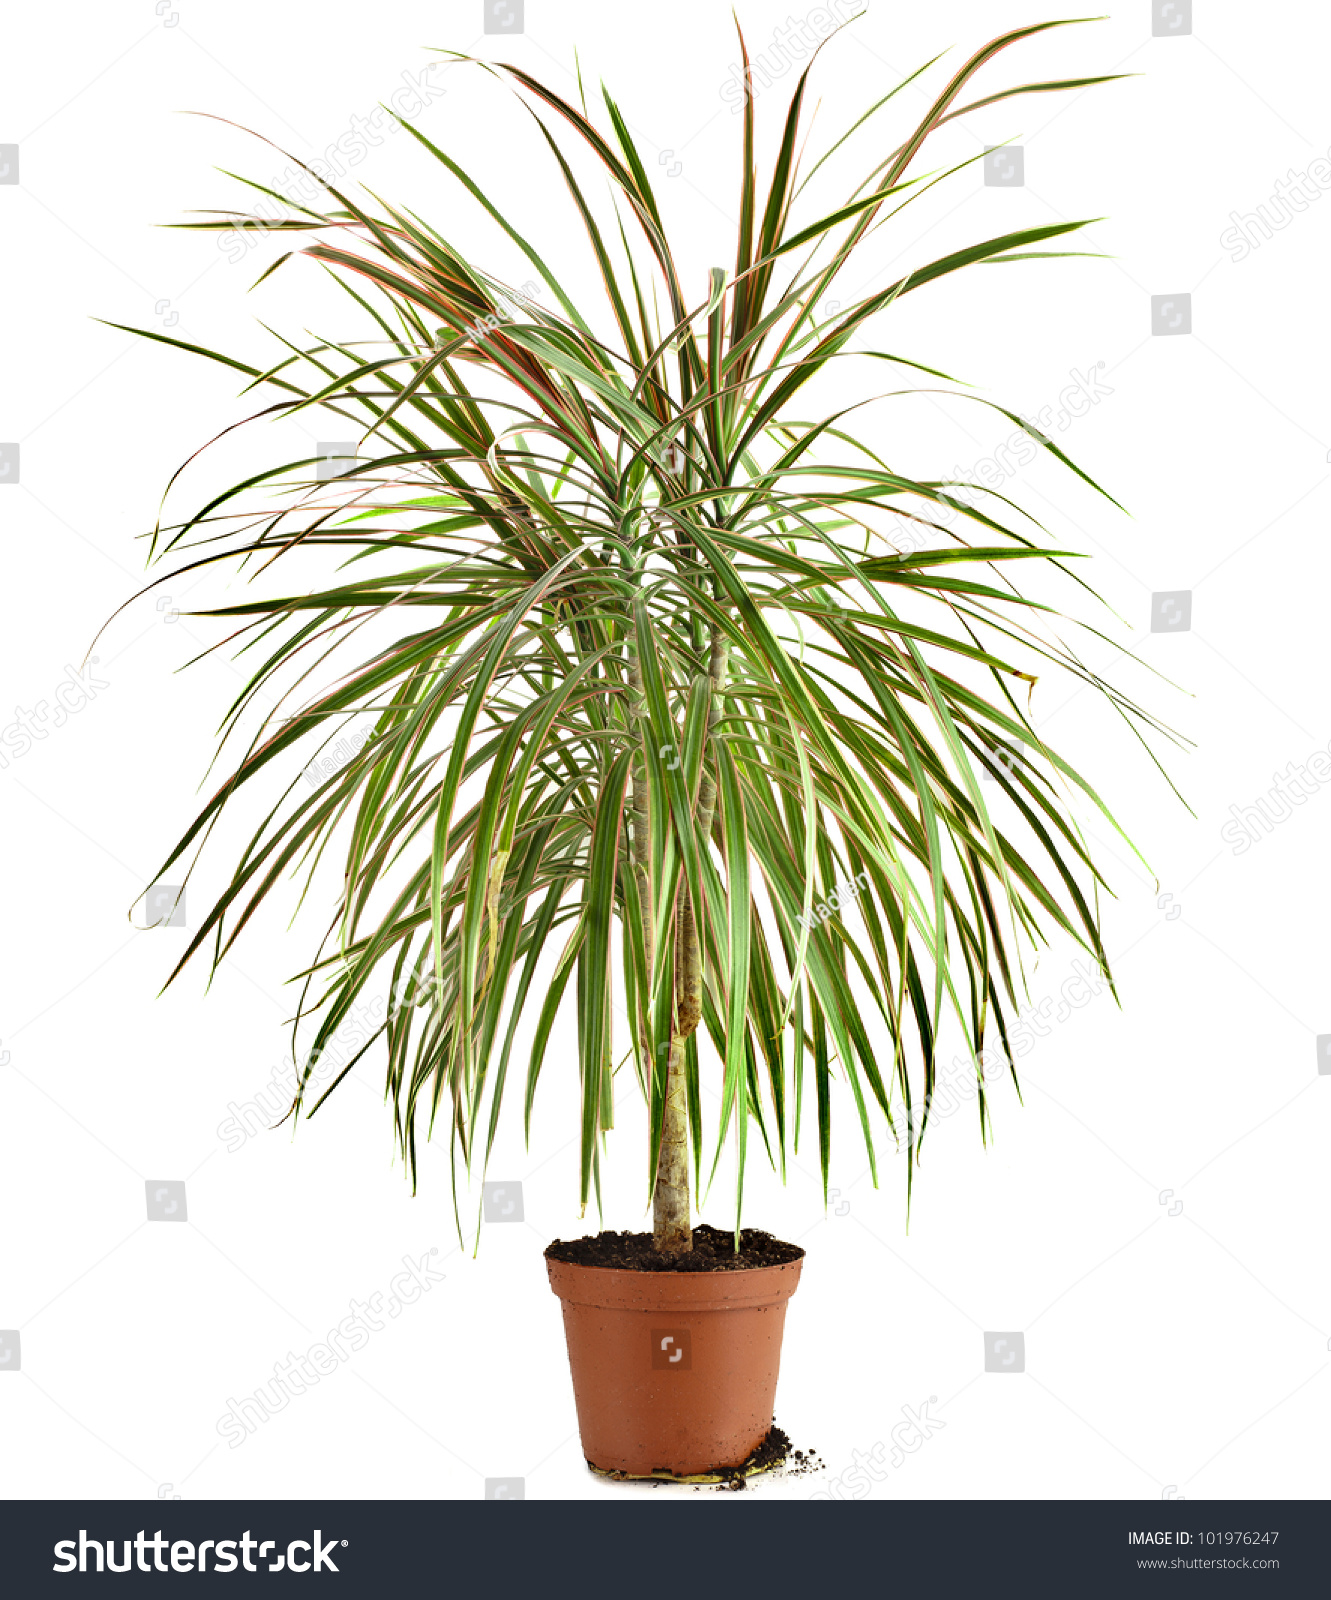 dracaena palm plant flower pot isolated stock photo 101976247 shutterstock. Black Bedroom Furniture Sets. Home Design Ideas